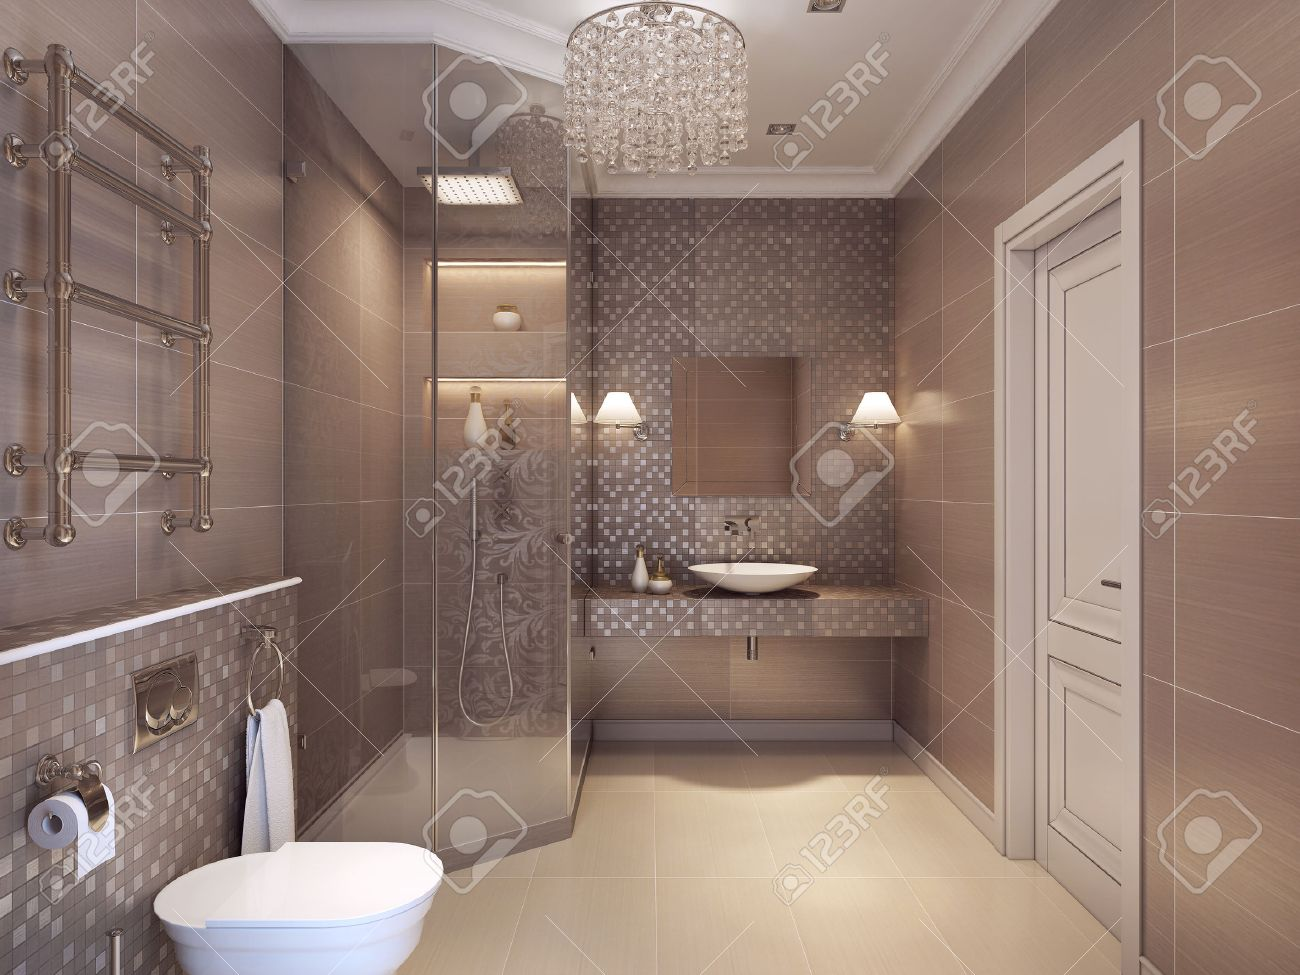 Modern Bathroom In The Art Deco Style. Shower, WC And Sink Konsoles. 3D